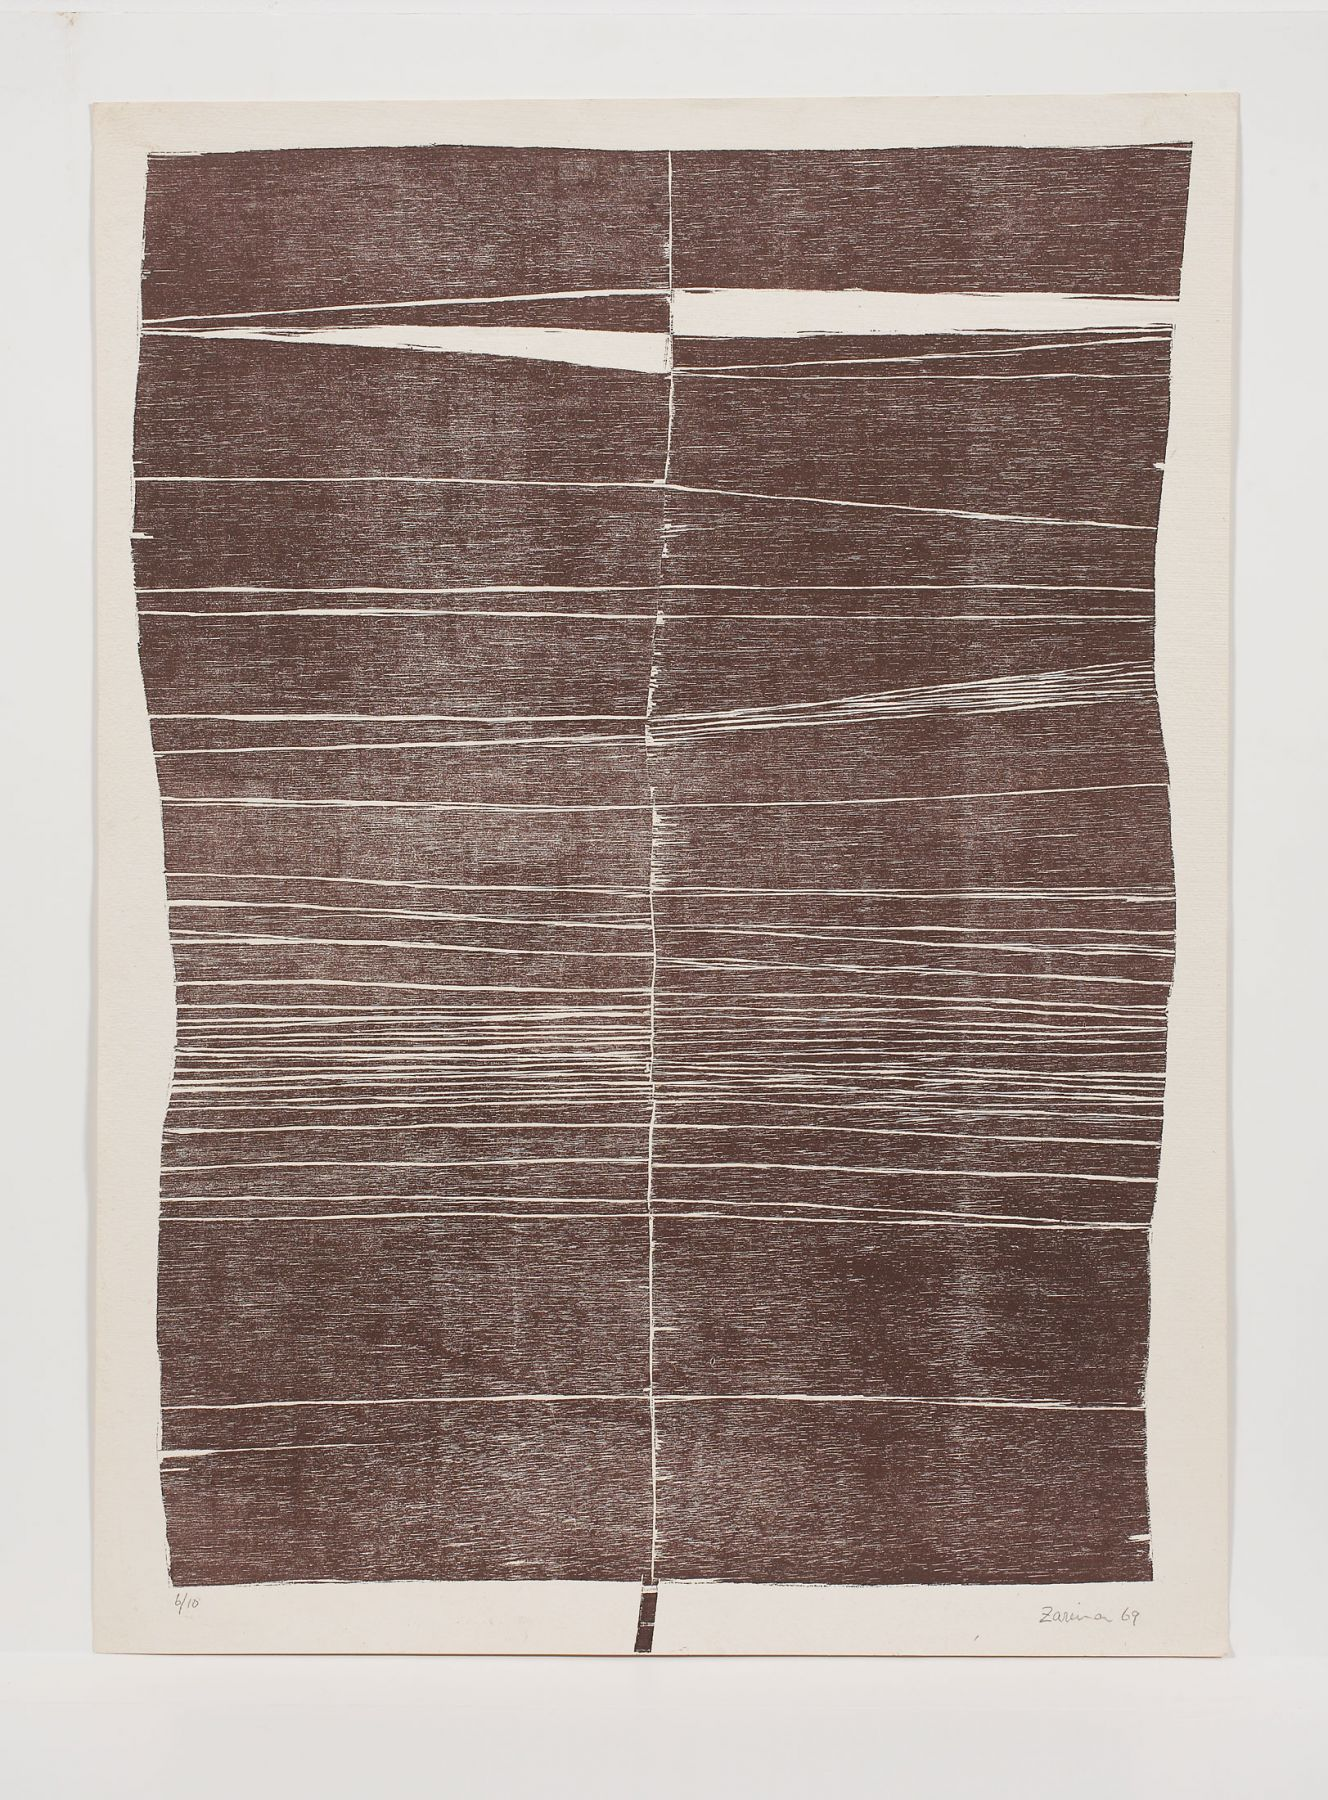 Zarina, Untitled, 1969,  Woodcut printed in burnt umber on Indian handmade paper, Edition of 20